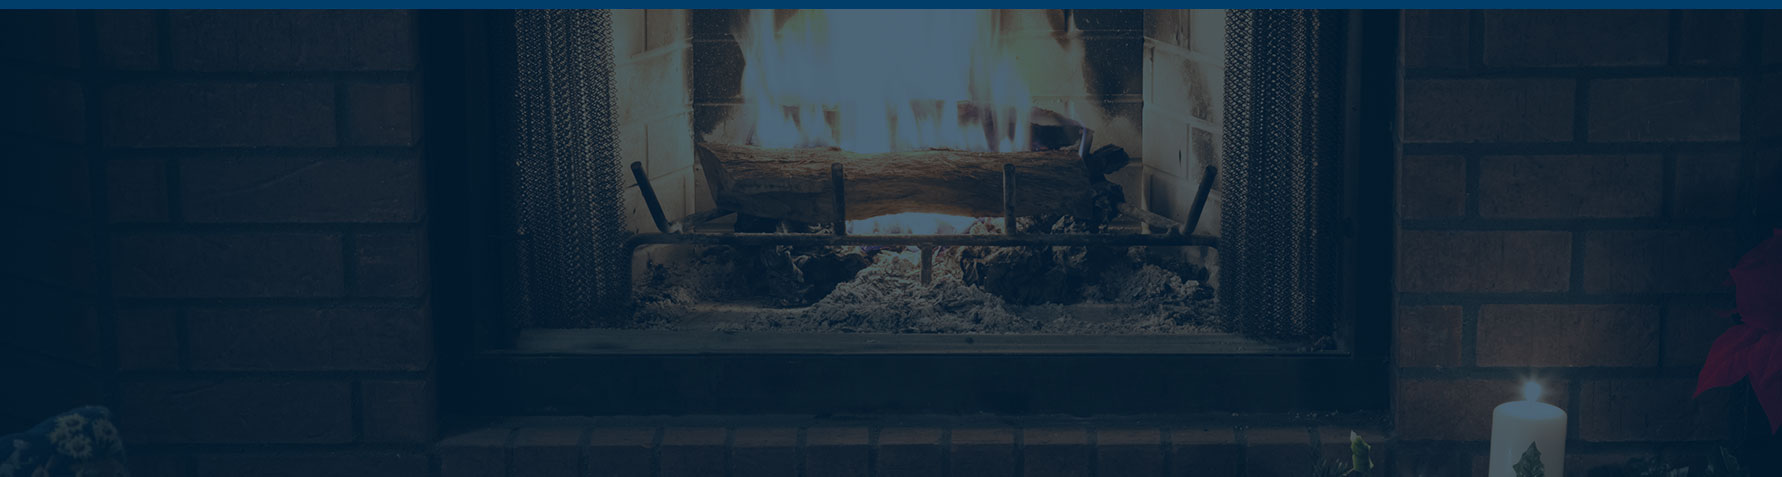 Visit our member directory for fireplace manufacturers.